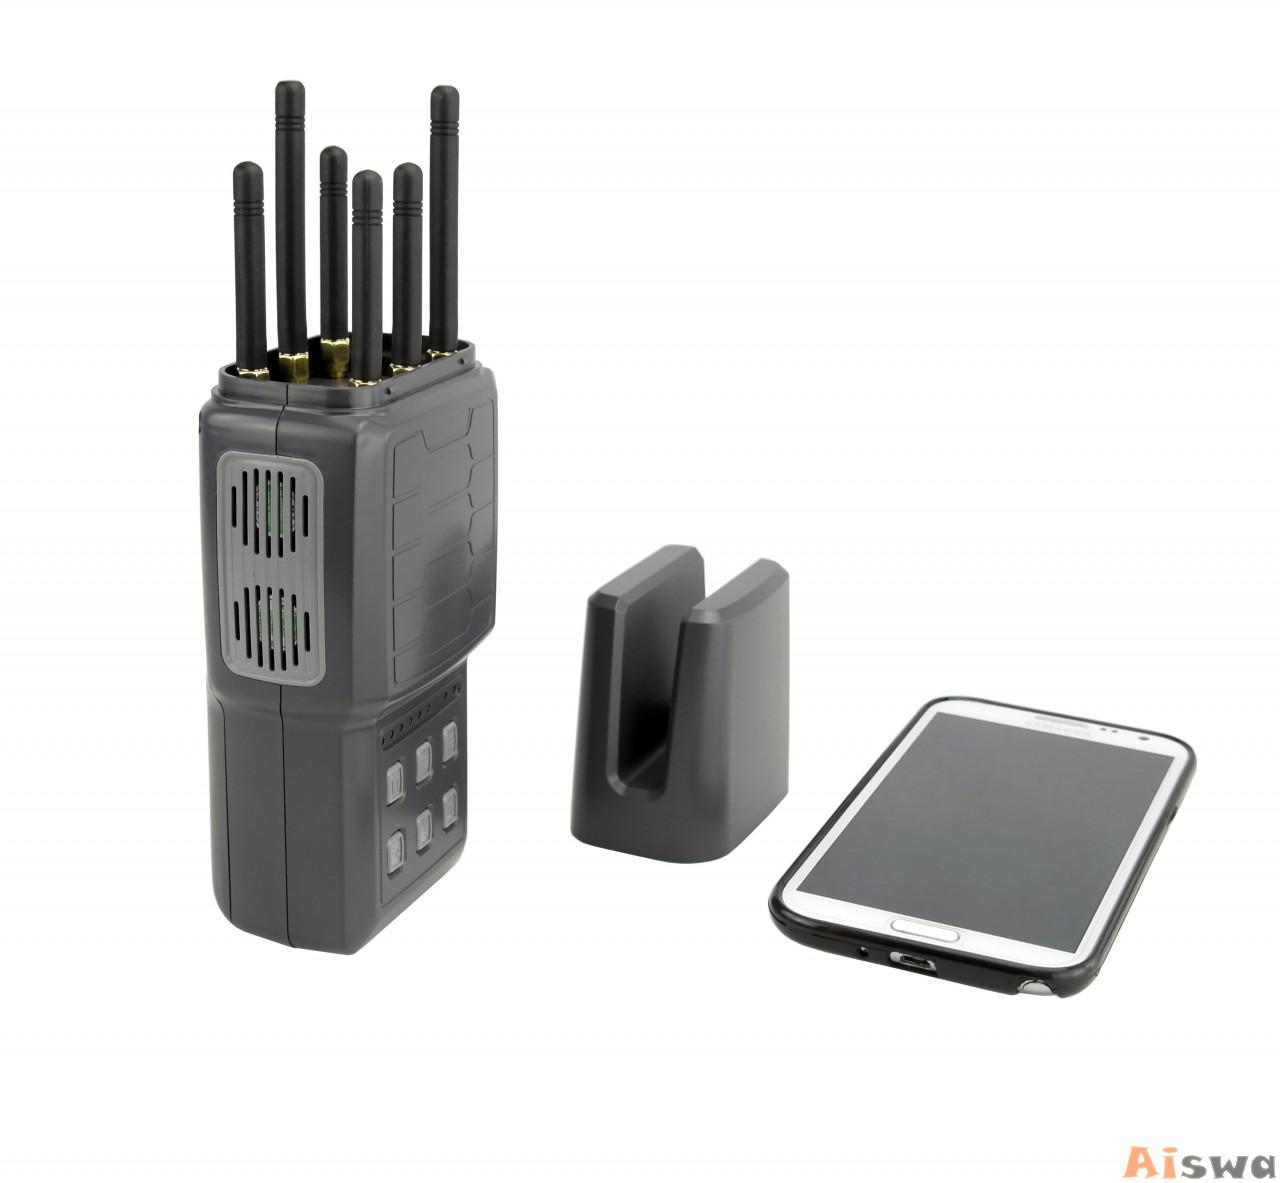 Handheld Cellphone Jammer WIFI and GPS jamming device with  6 bands 4